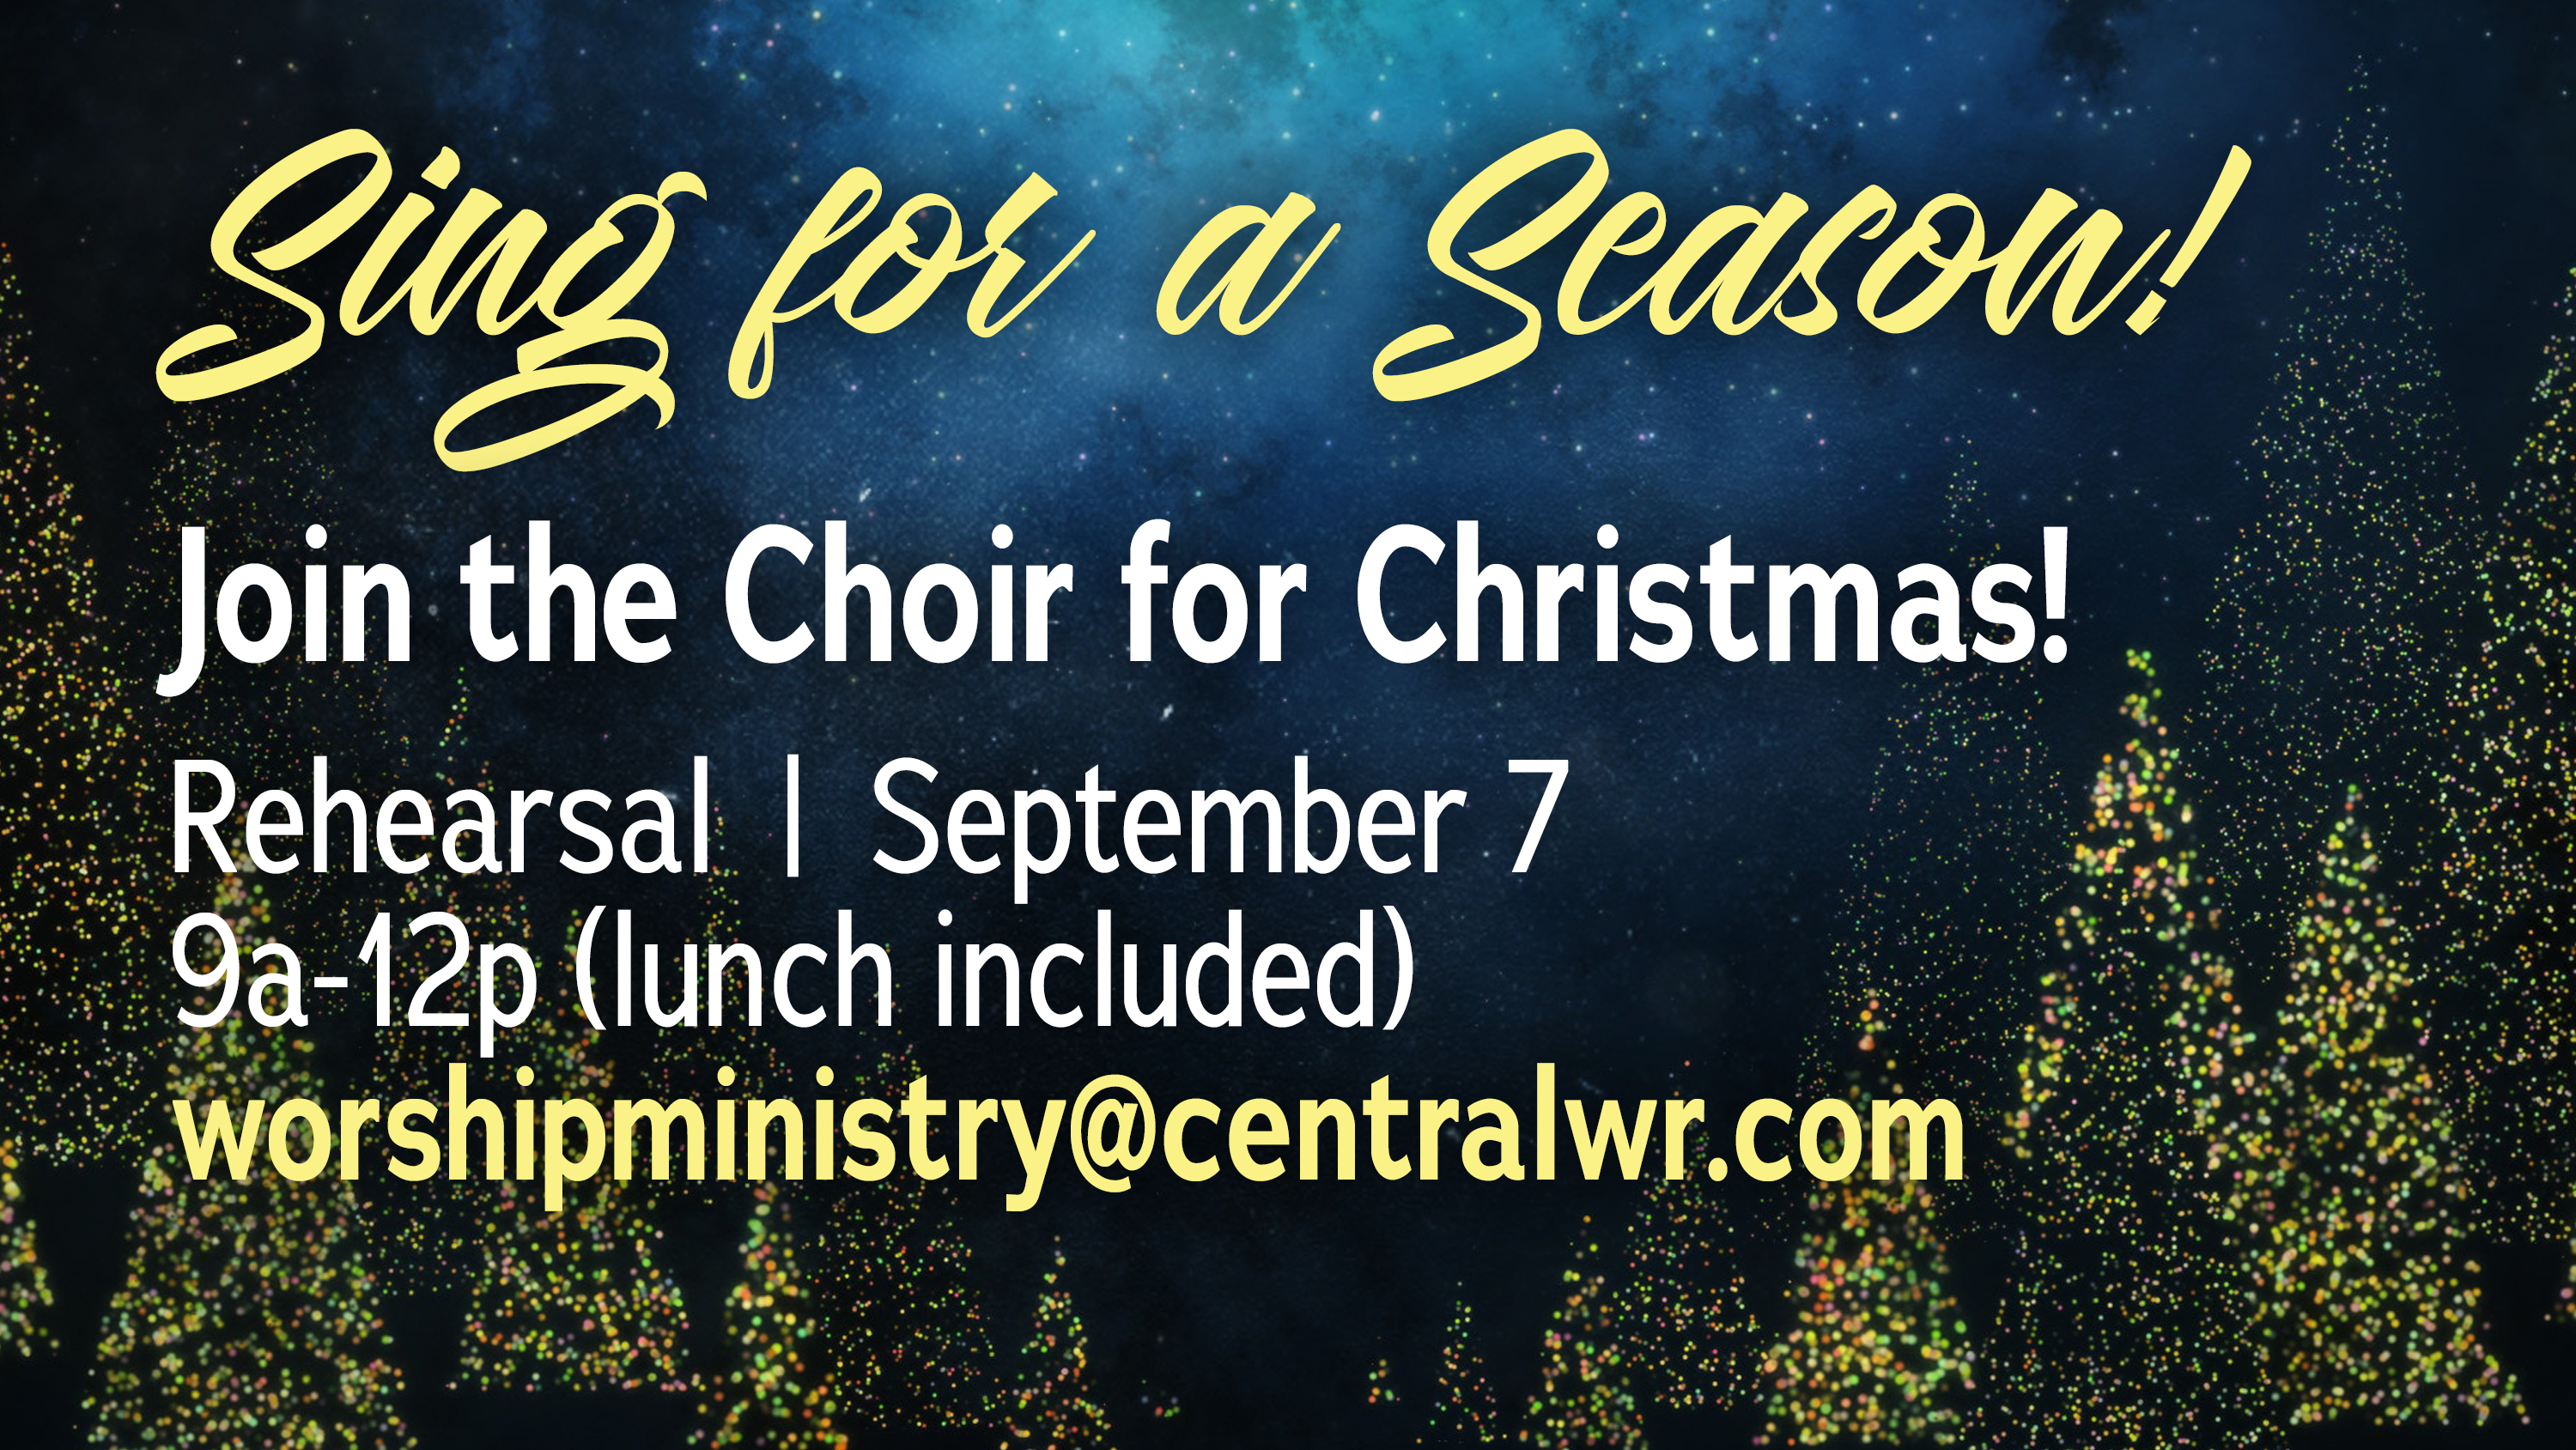 7  Sing for a Season image